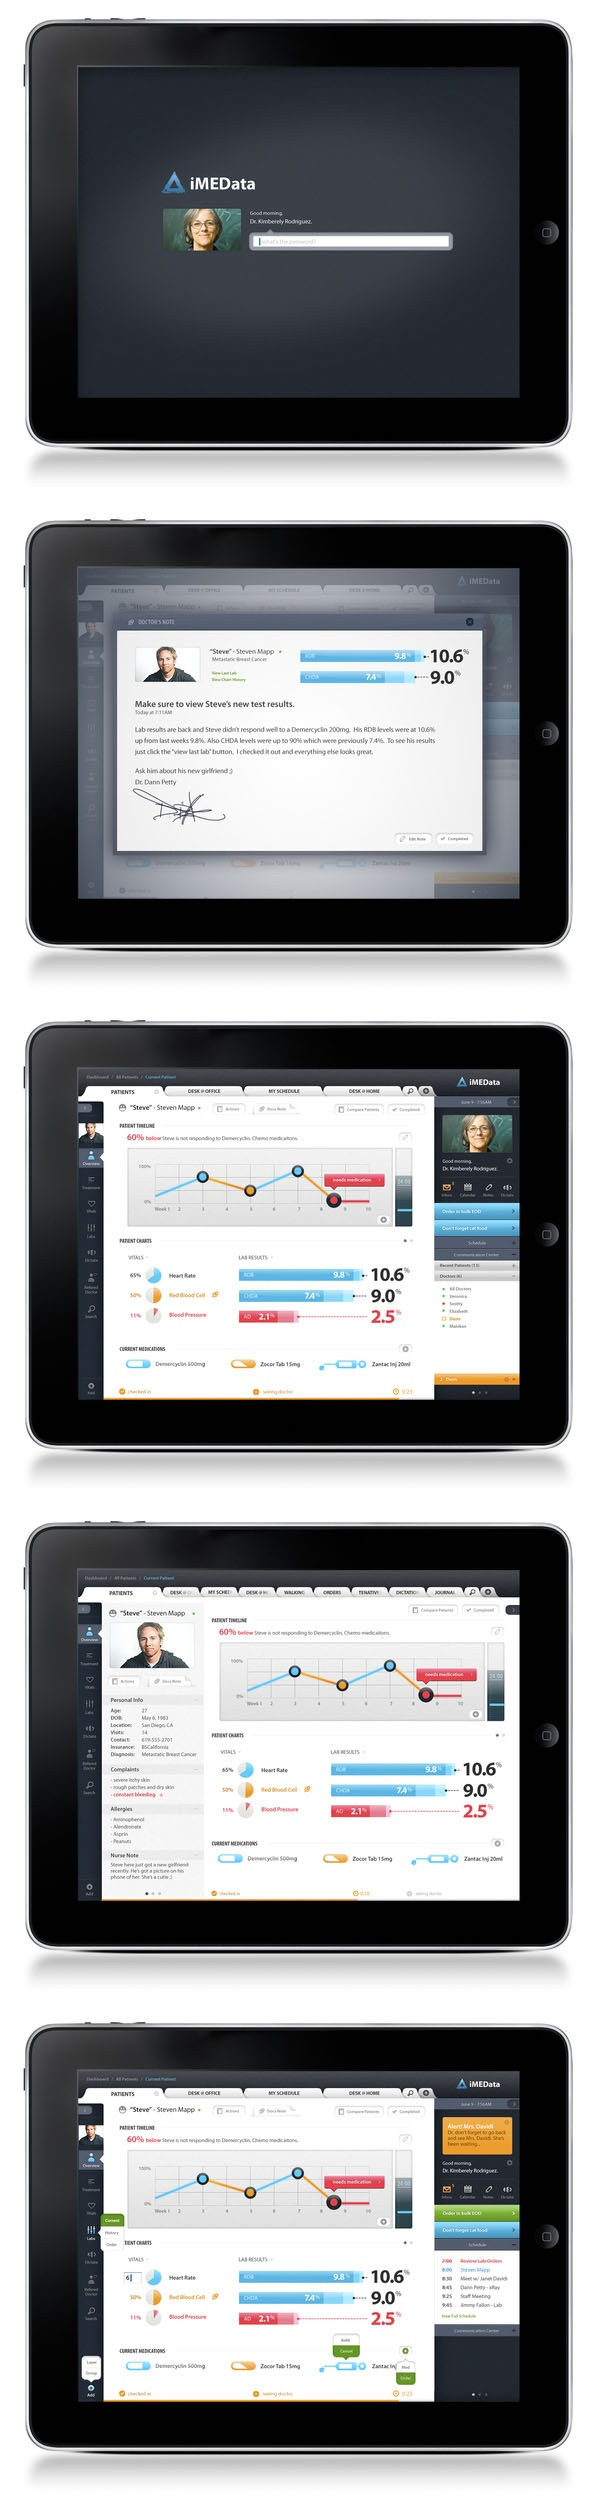 iMEData iPad Application by Dann Petty, via Behance   ***   The new way doctors interact is with this iPad application.